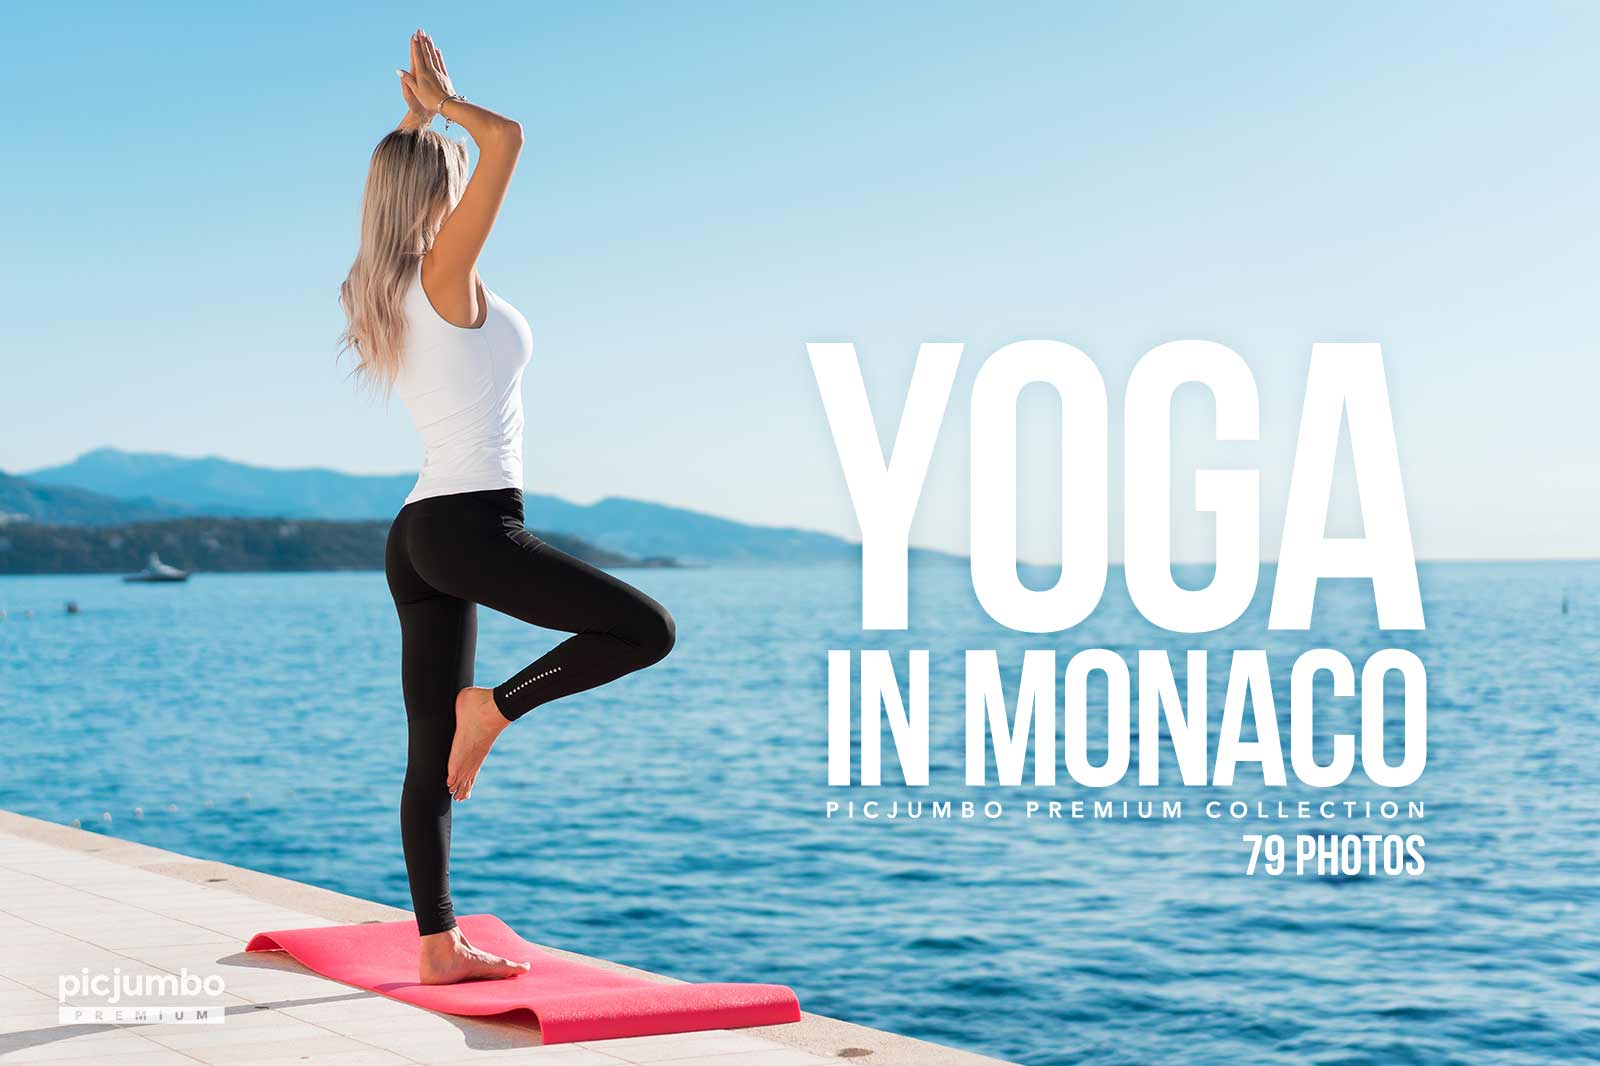 picjumbo-premium-fitness-yoga-stretching-collection-monaco